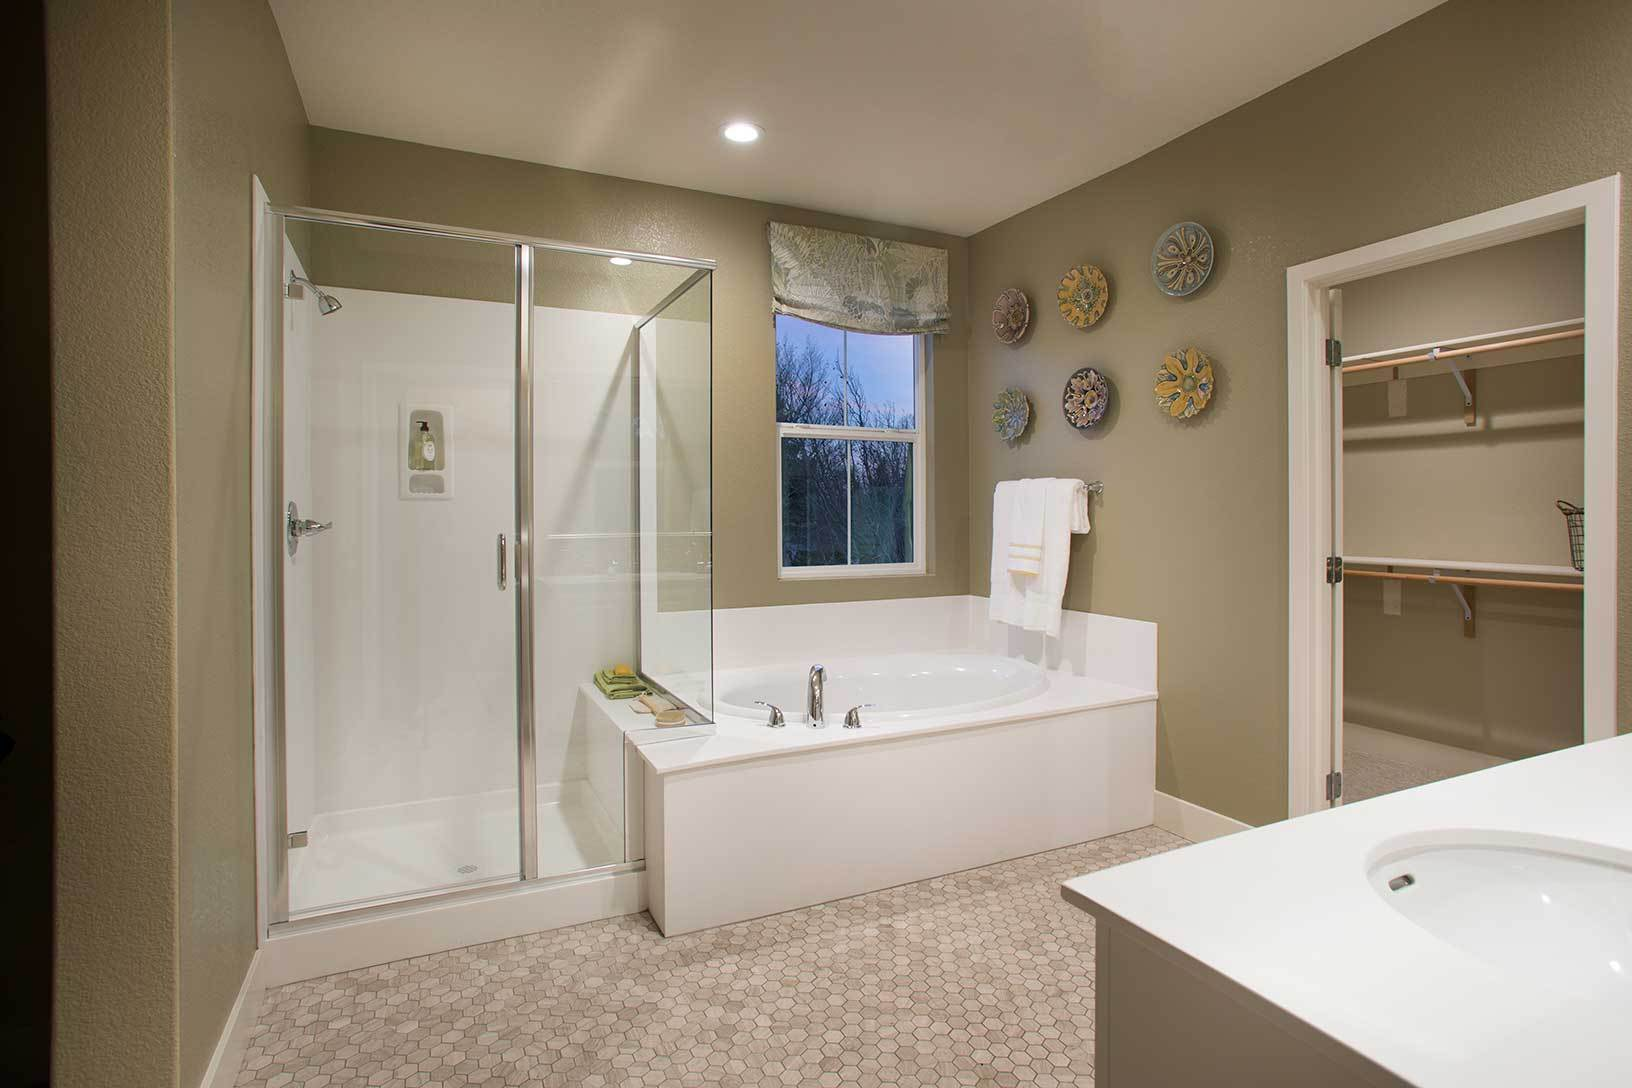 Bathroom-in-Residence 1-at-Bloom at Green Valley-in-Fairfield